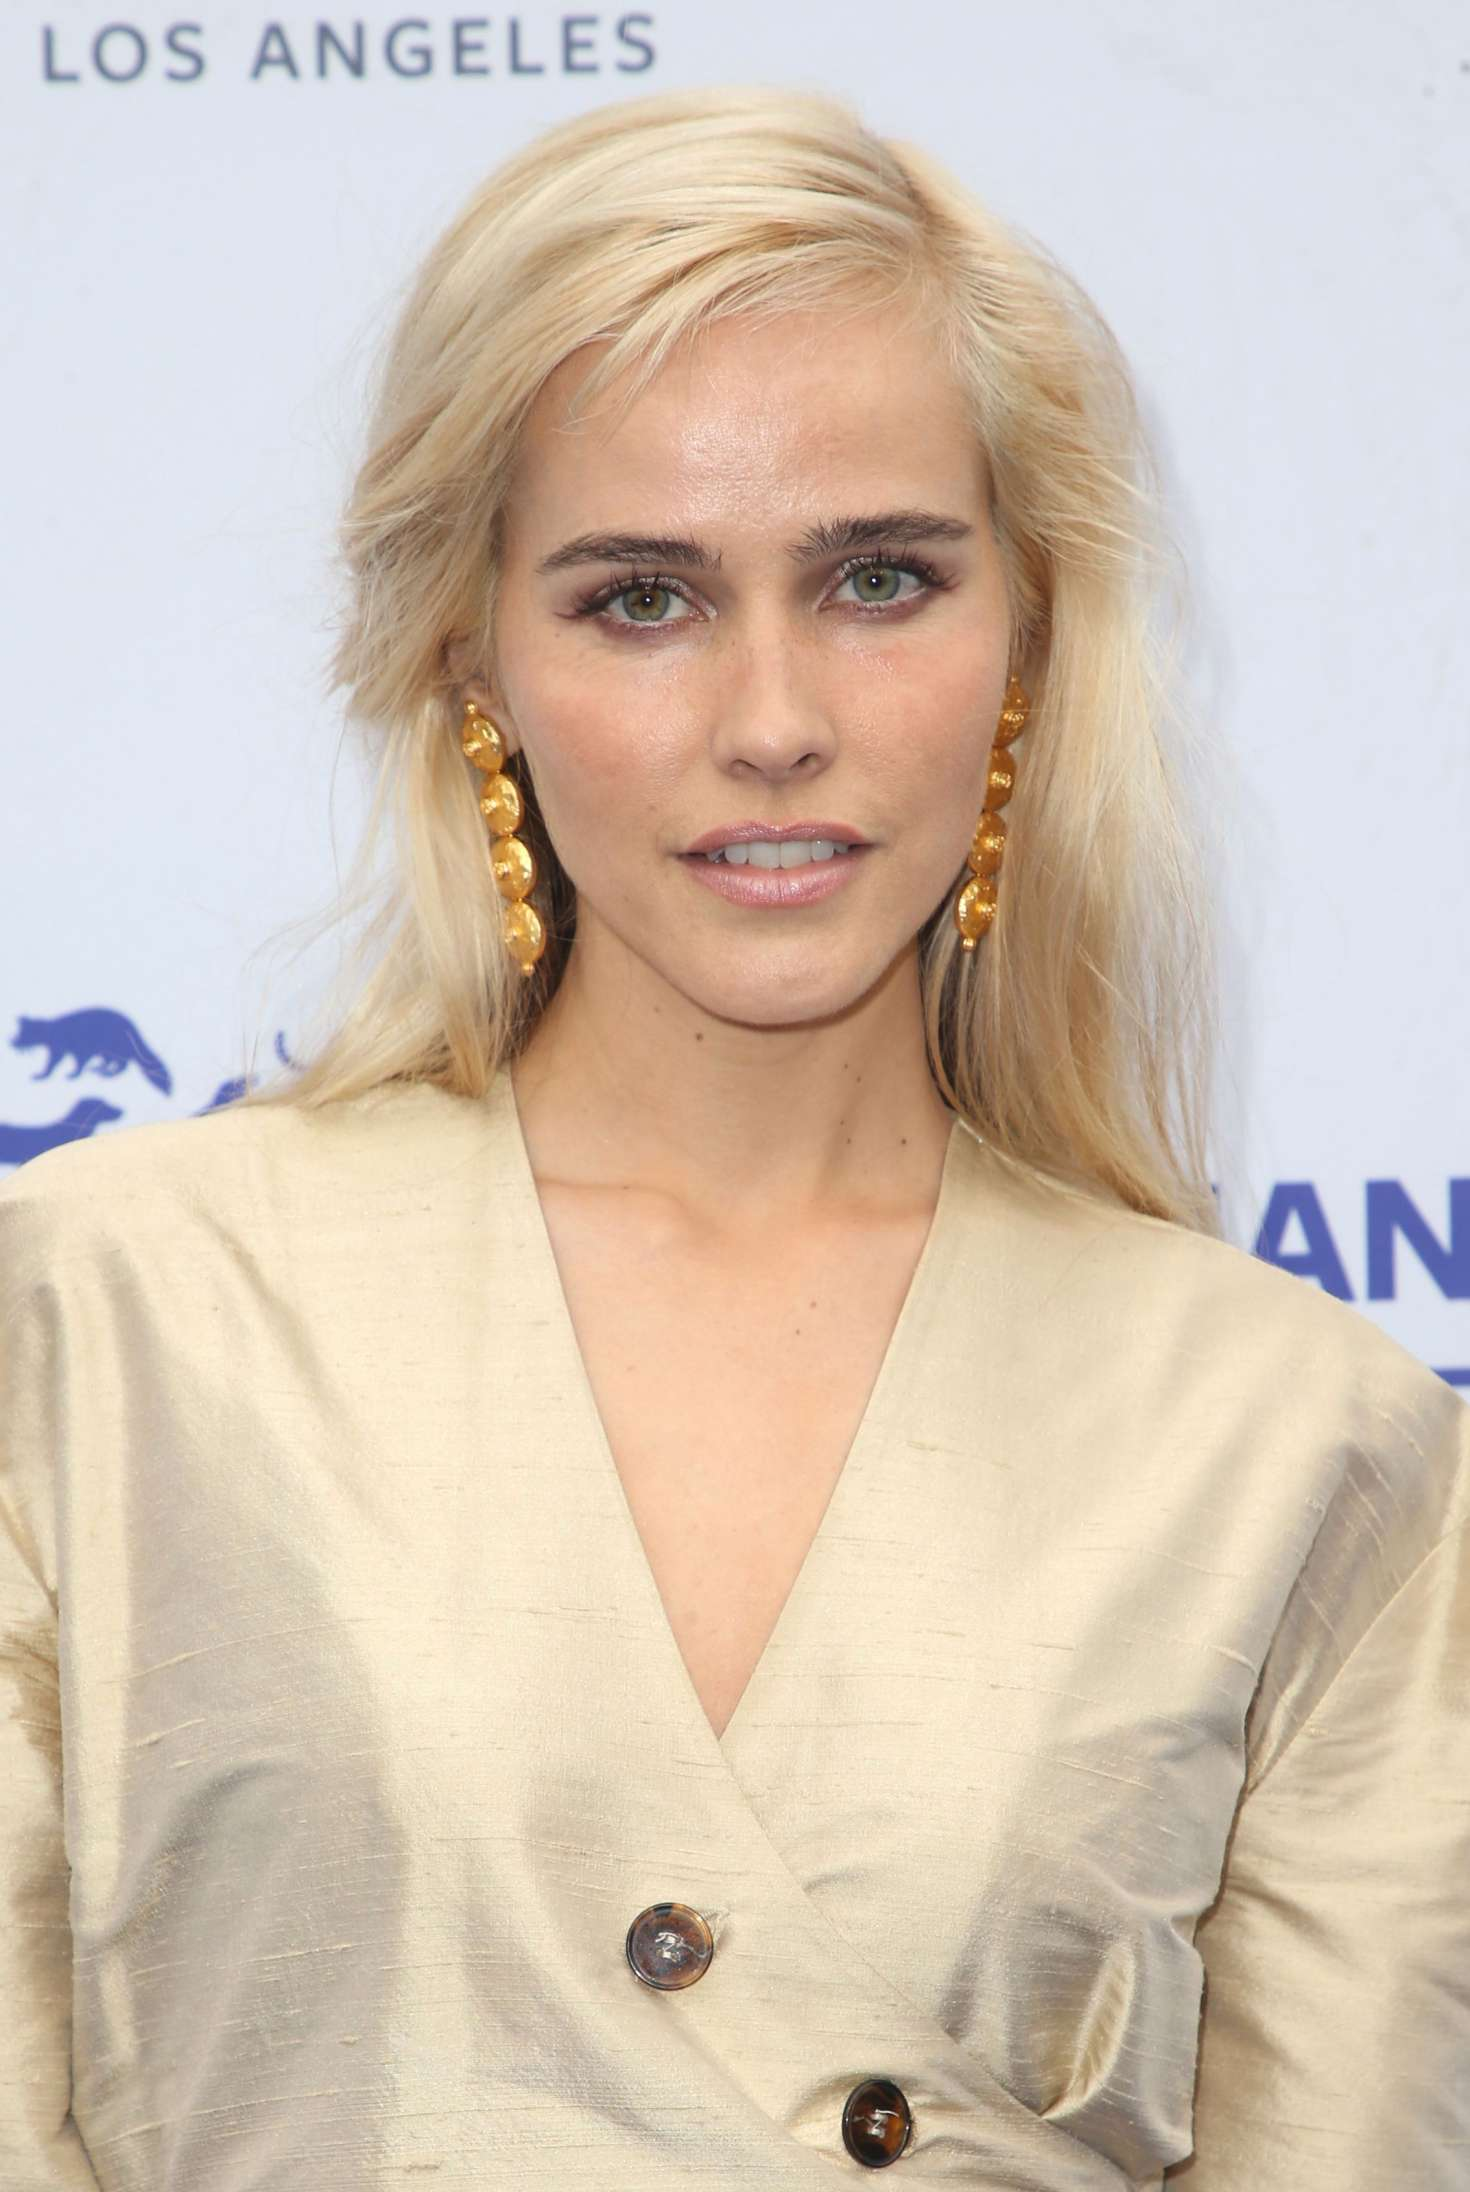 isabel lucas - photo #50